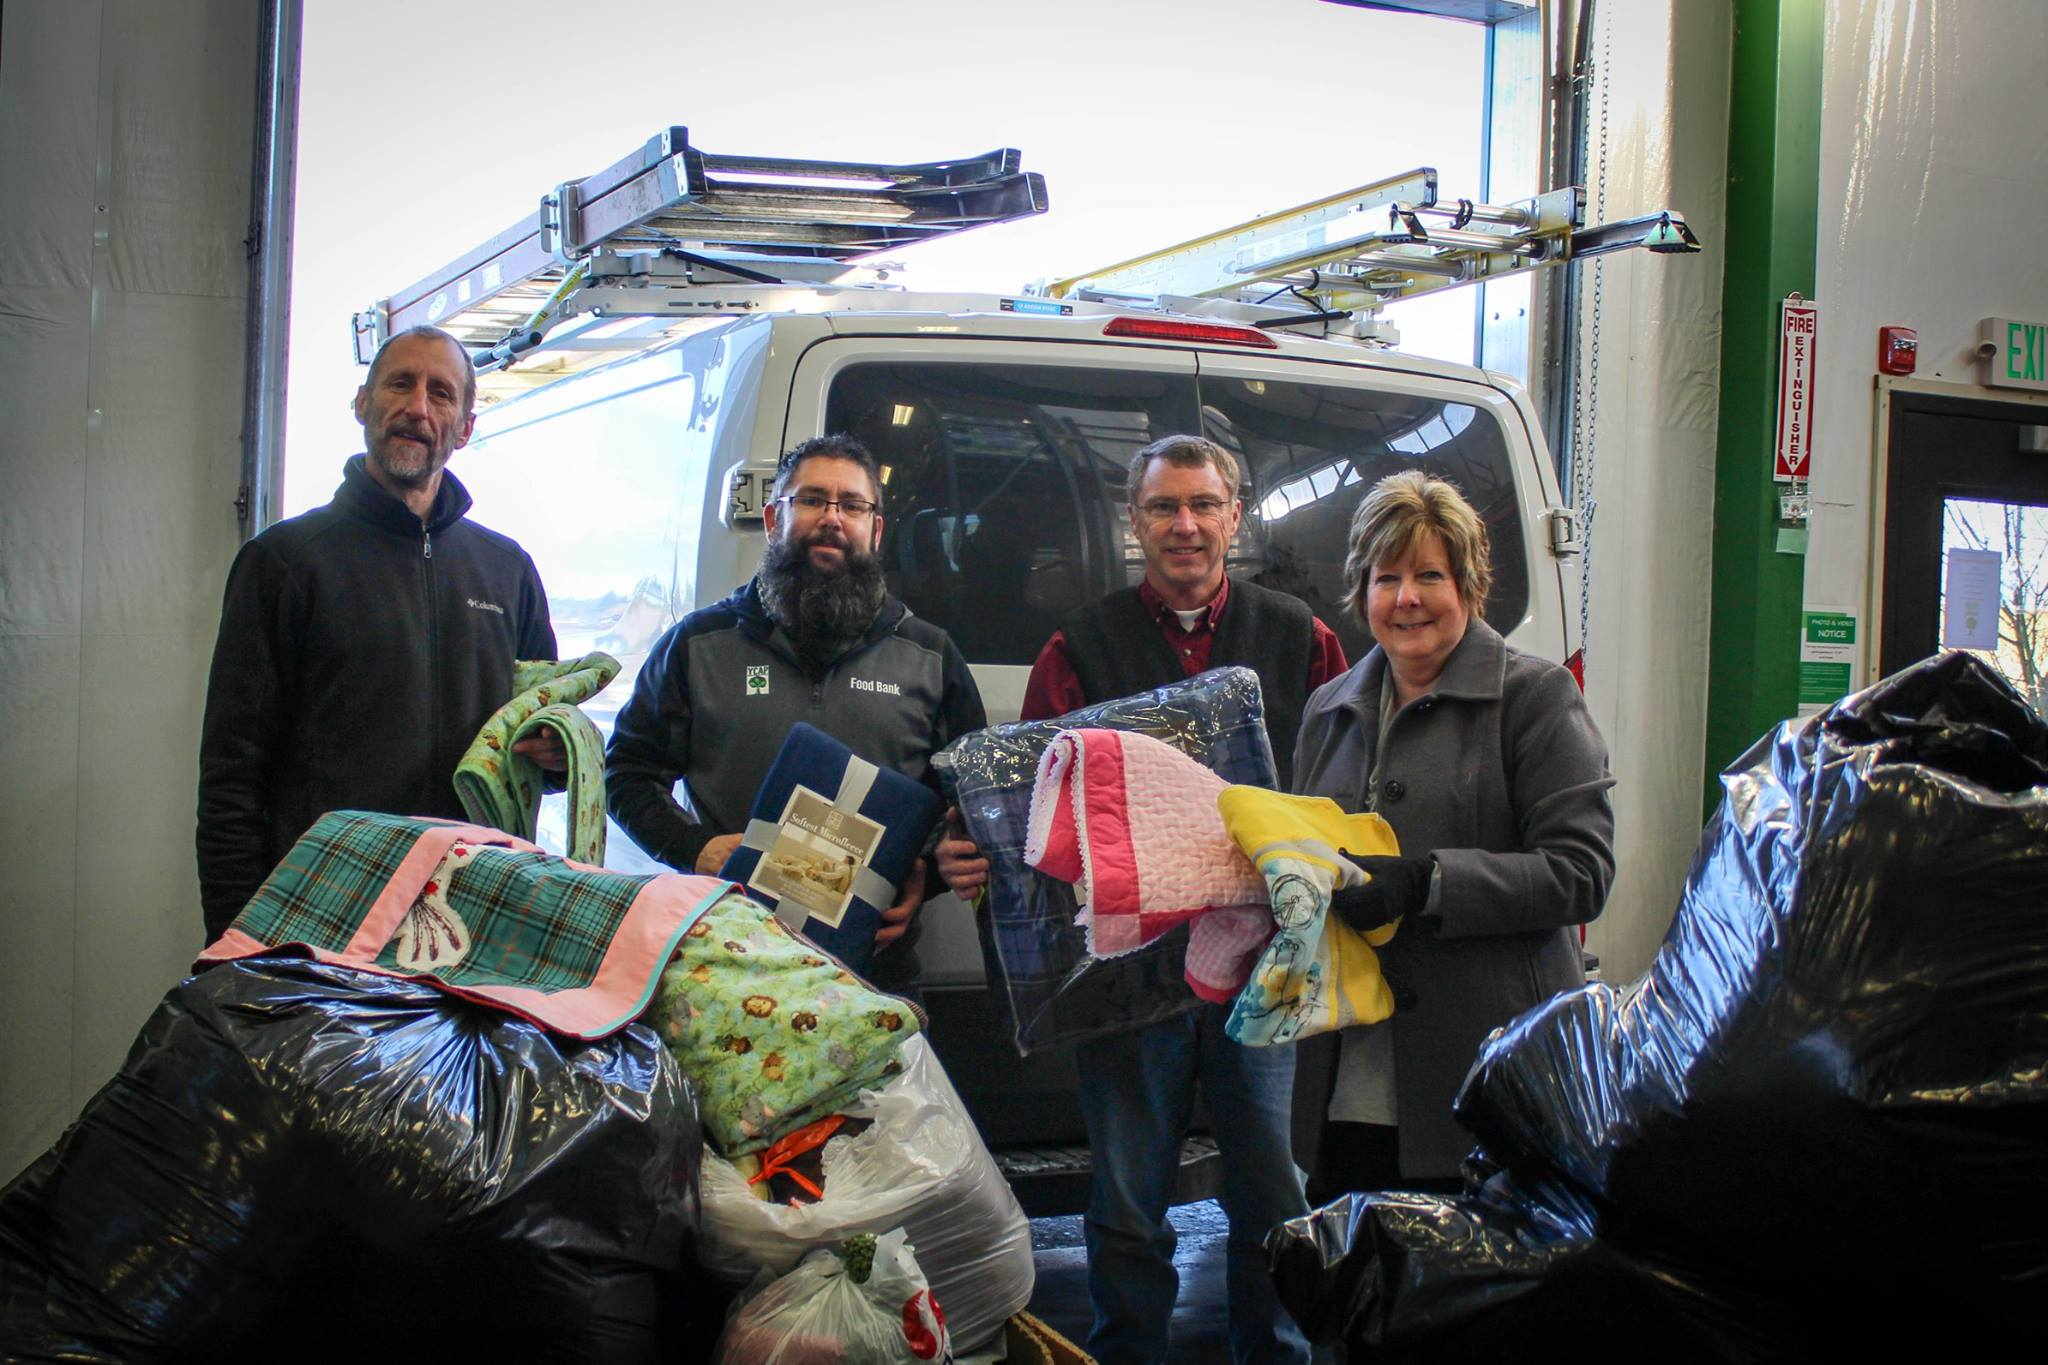 First Federal Donates Books and Blankets